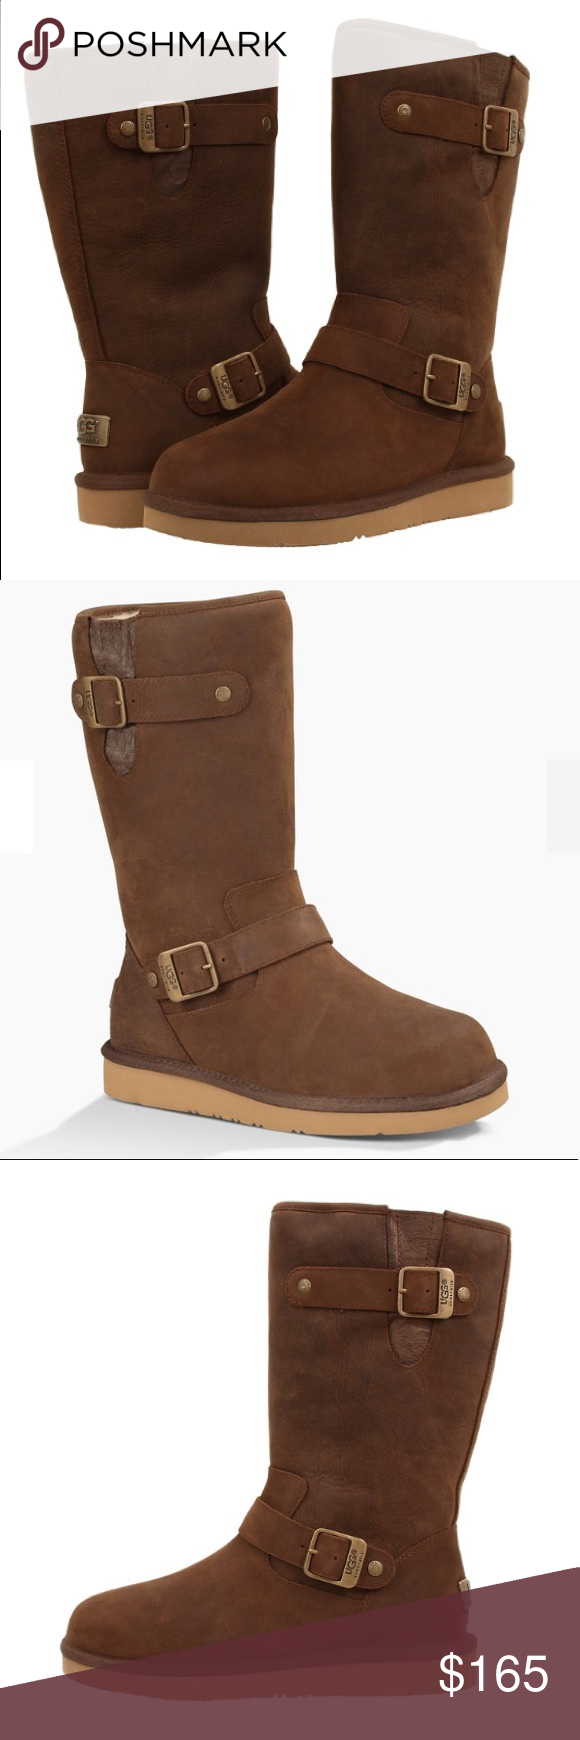 4ee356a2181 UGG Australia Sutter Leather & UGGpure Boots, 6 New without box ...